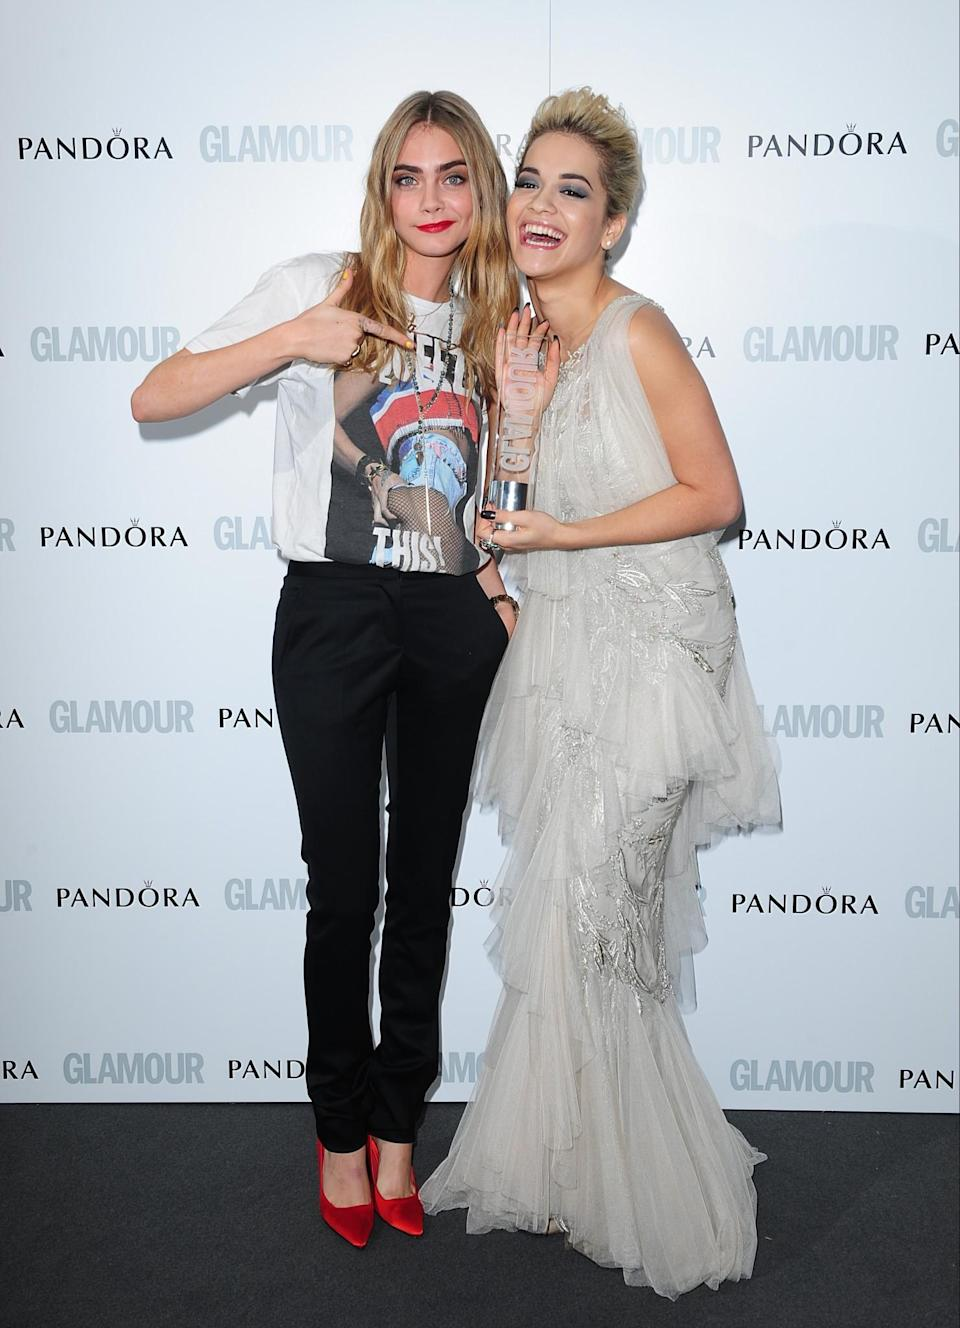 <p>Cara Delevingne and Rita Ora for a time were inseparable, even calling each other 'wifey'. Their BFF union came crashing down after Cara snatched the mic from Rita at a DKNY fashion party, and wailed into it, before clumsily dancing around, stealing Rita's cap and grinding the R.I.P hitmaker from behind. Cringe. [PA] </p>